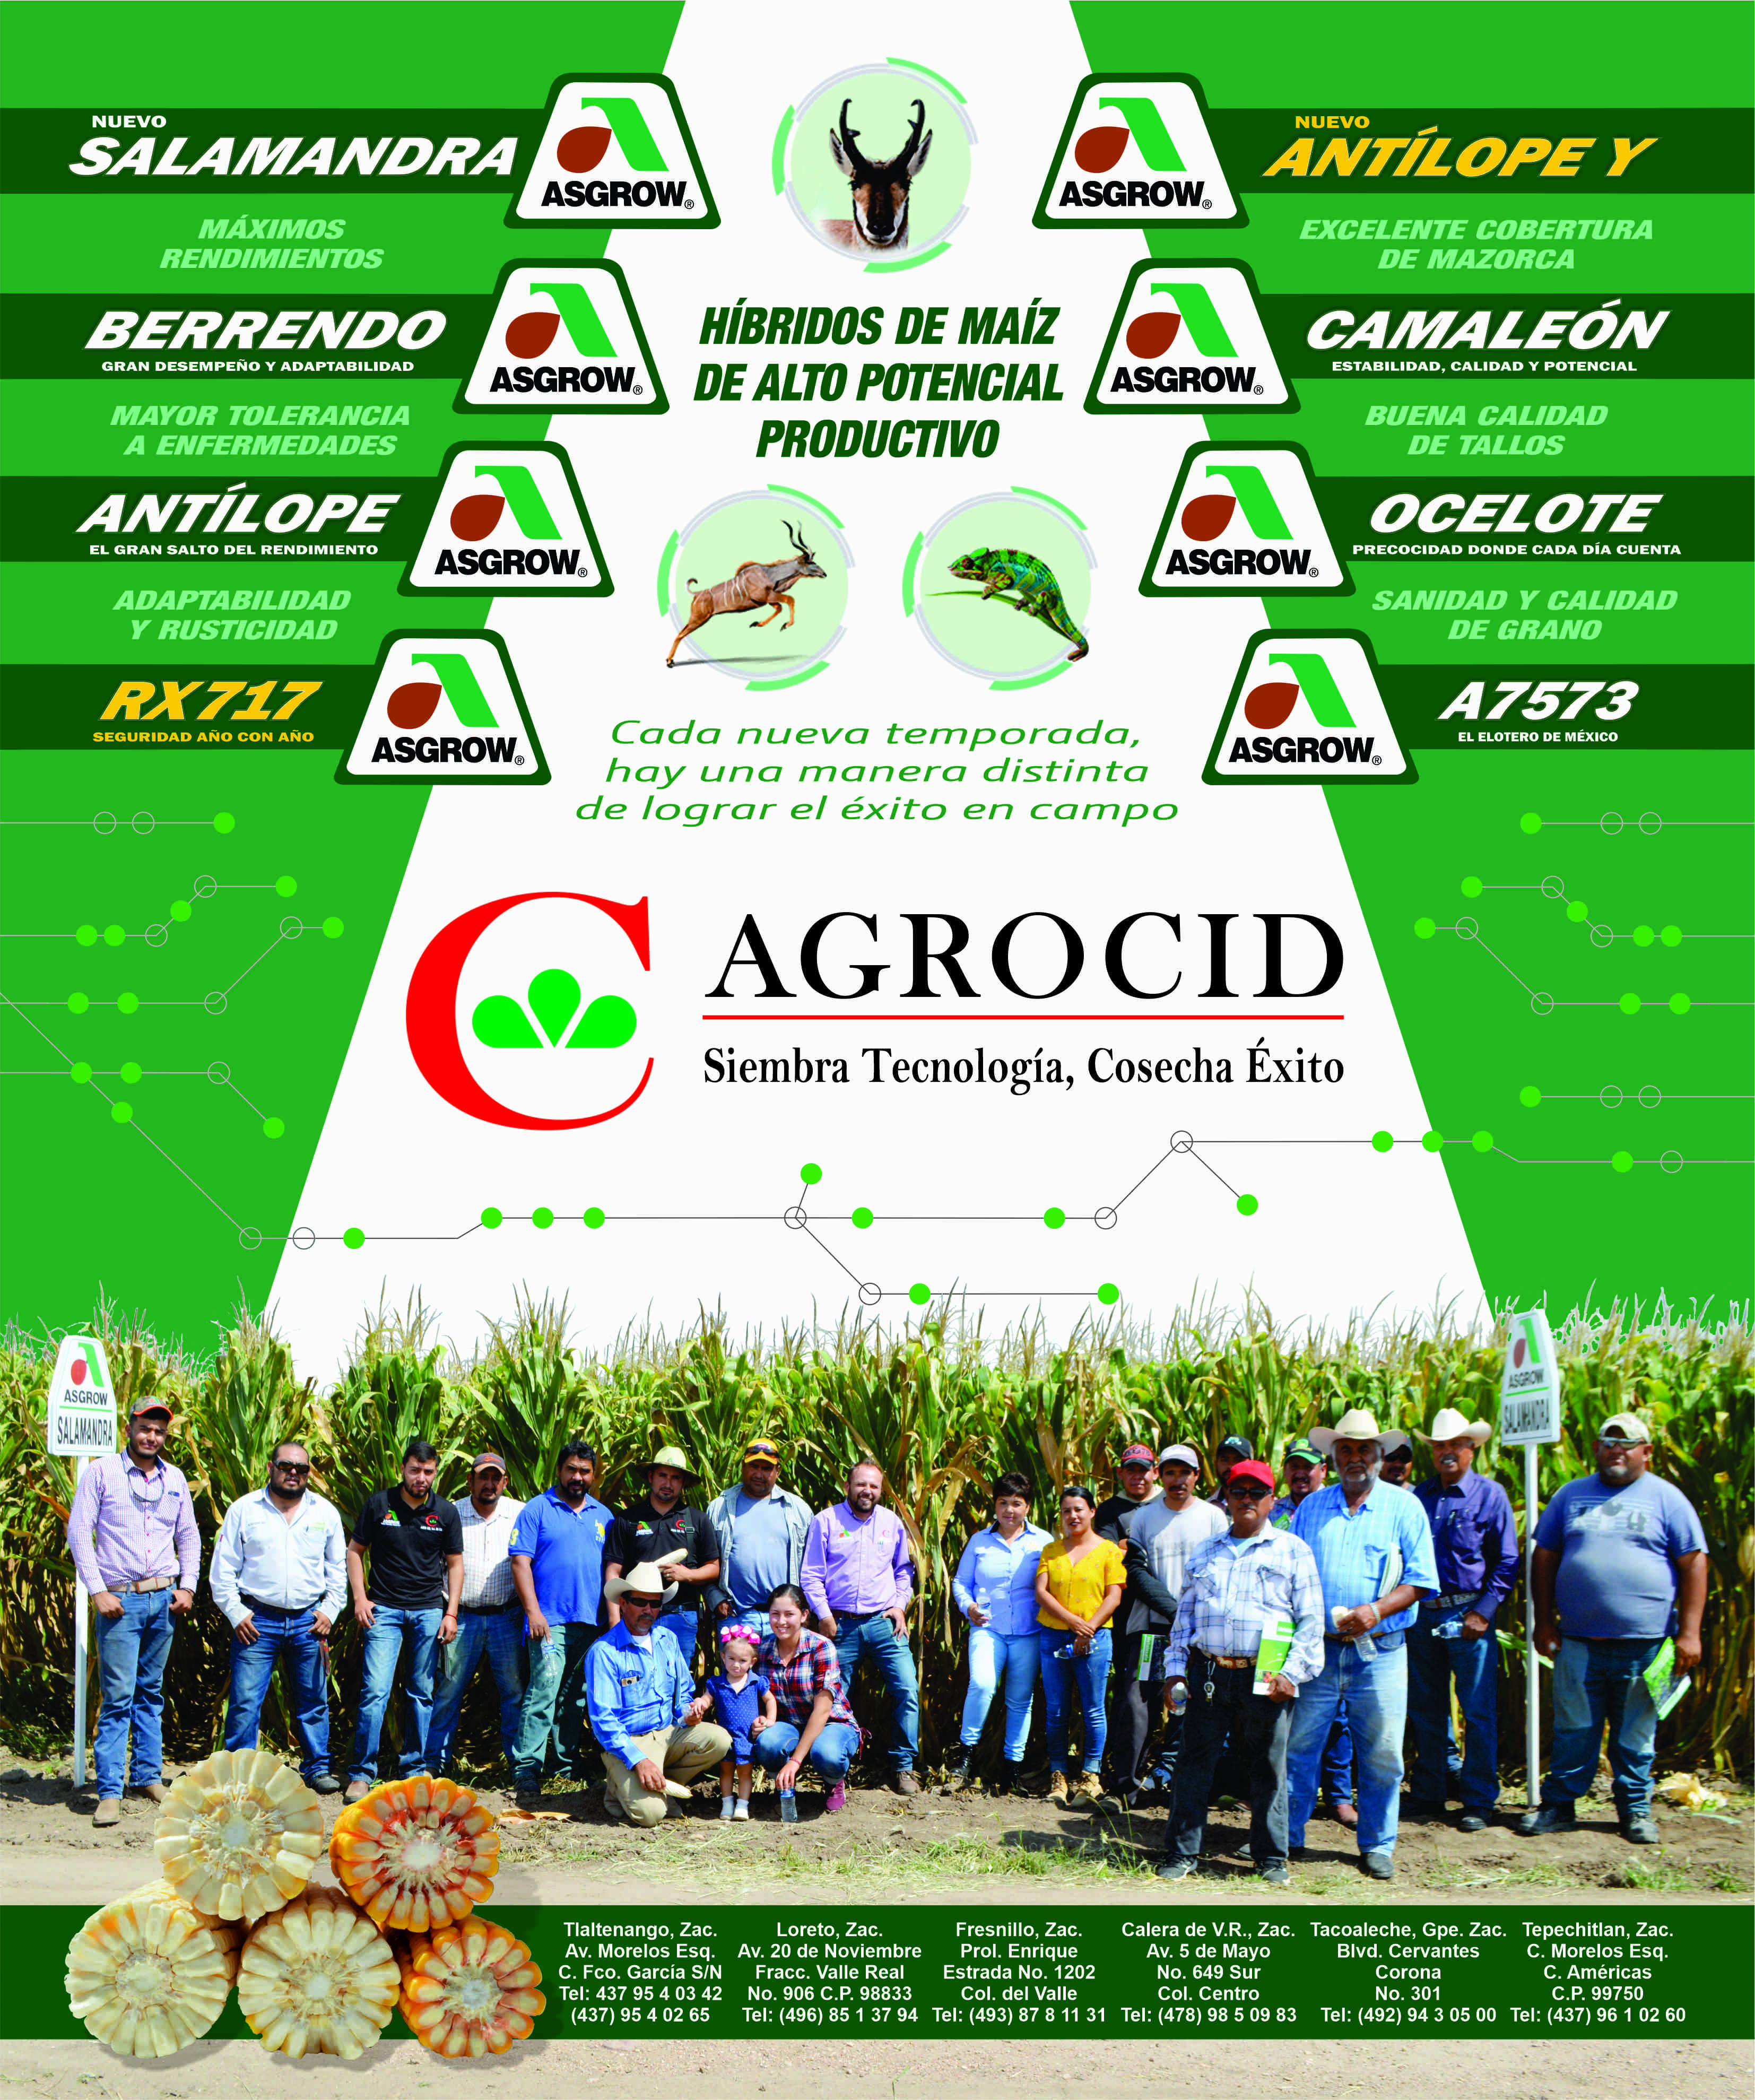 AGROCID